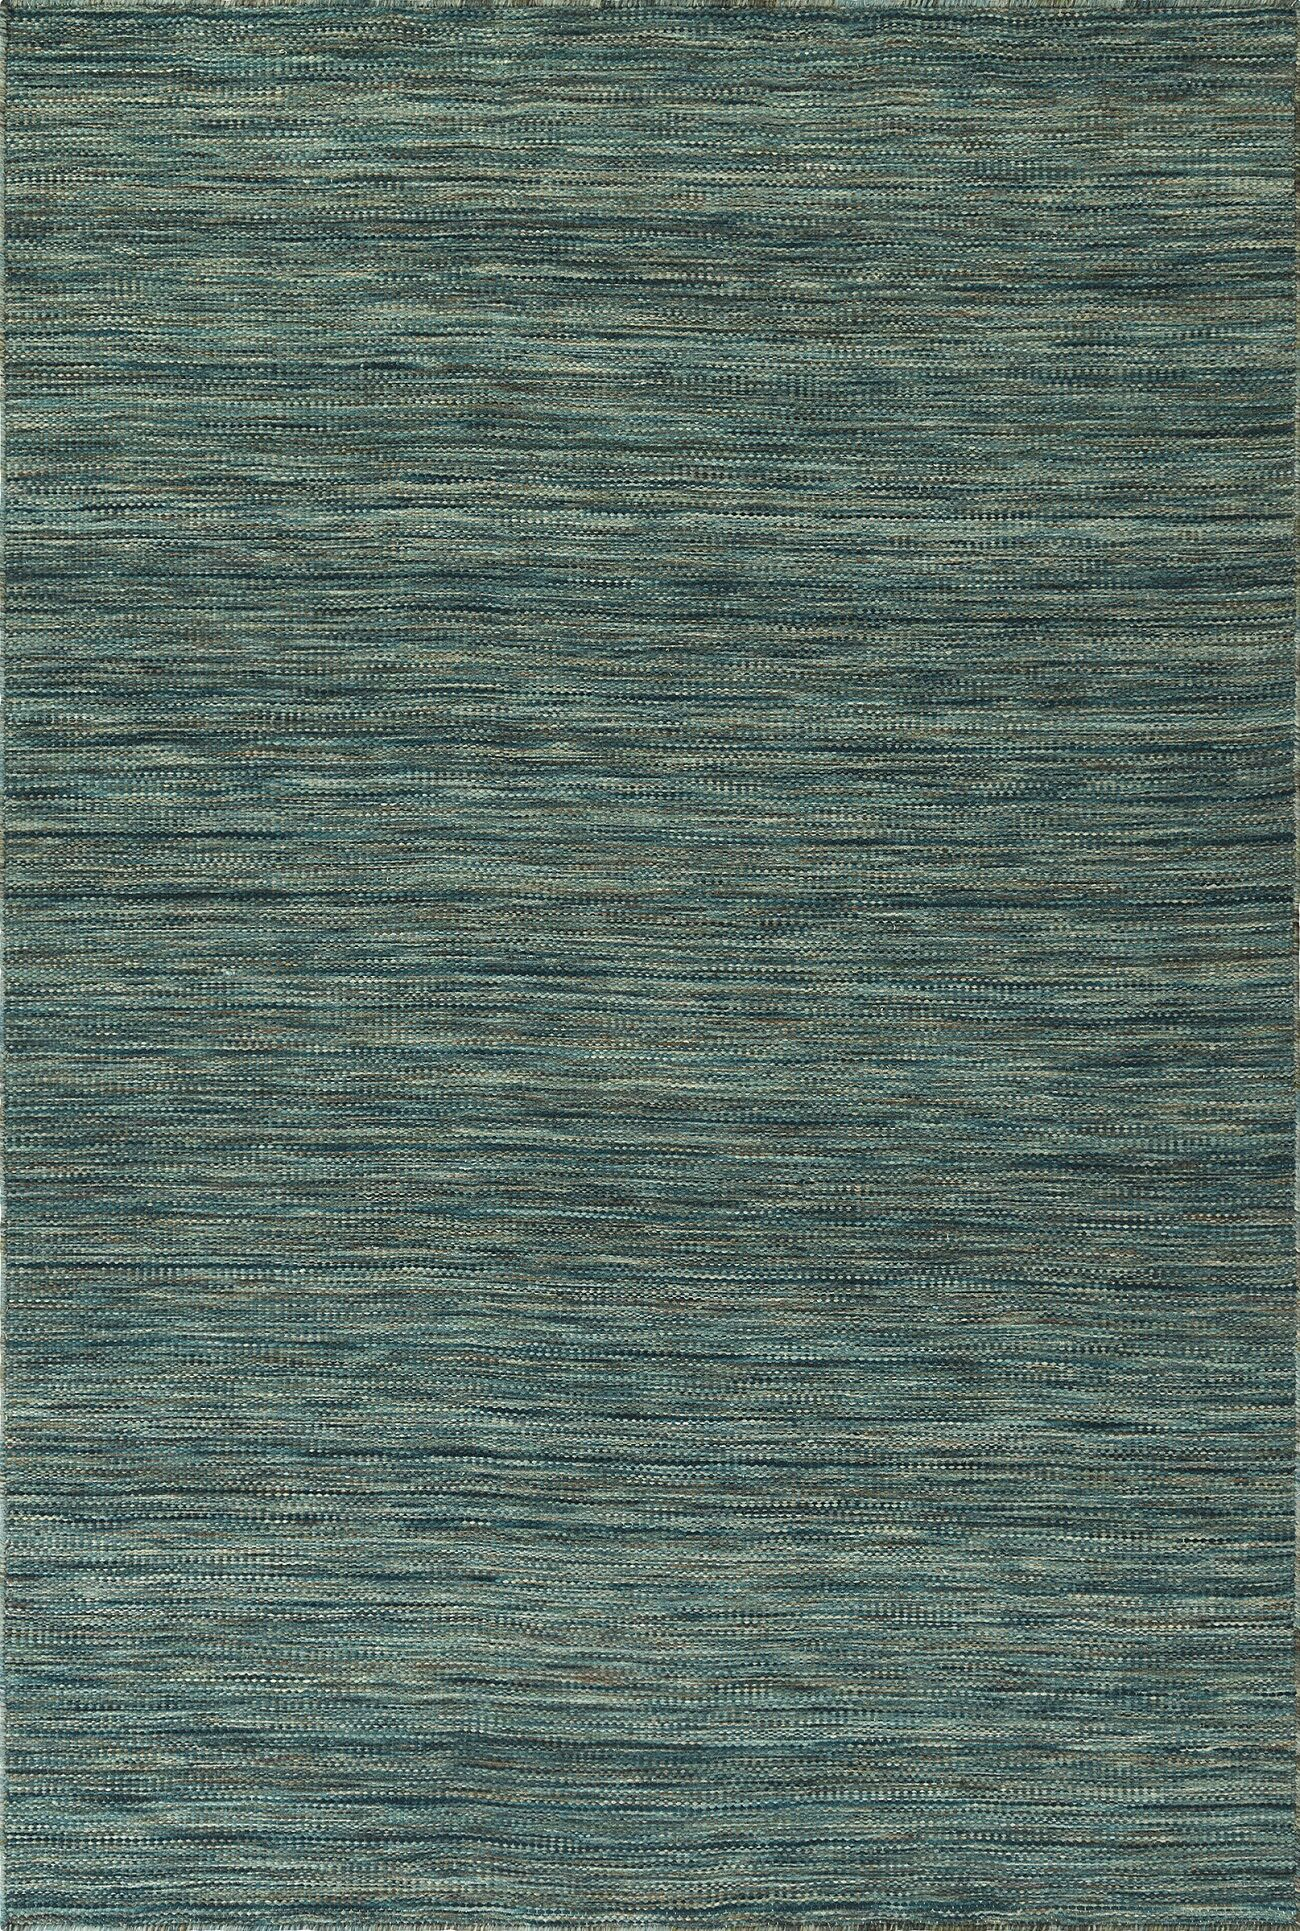 Junien Hand Woven Wool Turquoise Area Rug Rug Size: Rectangle 3'6